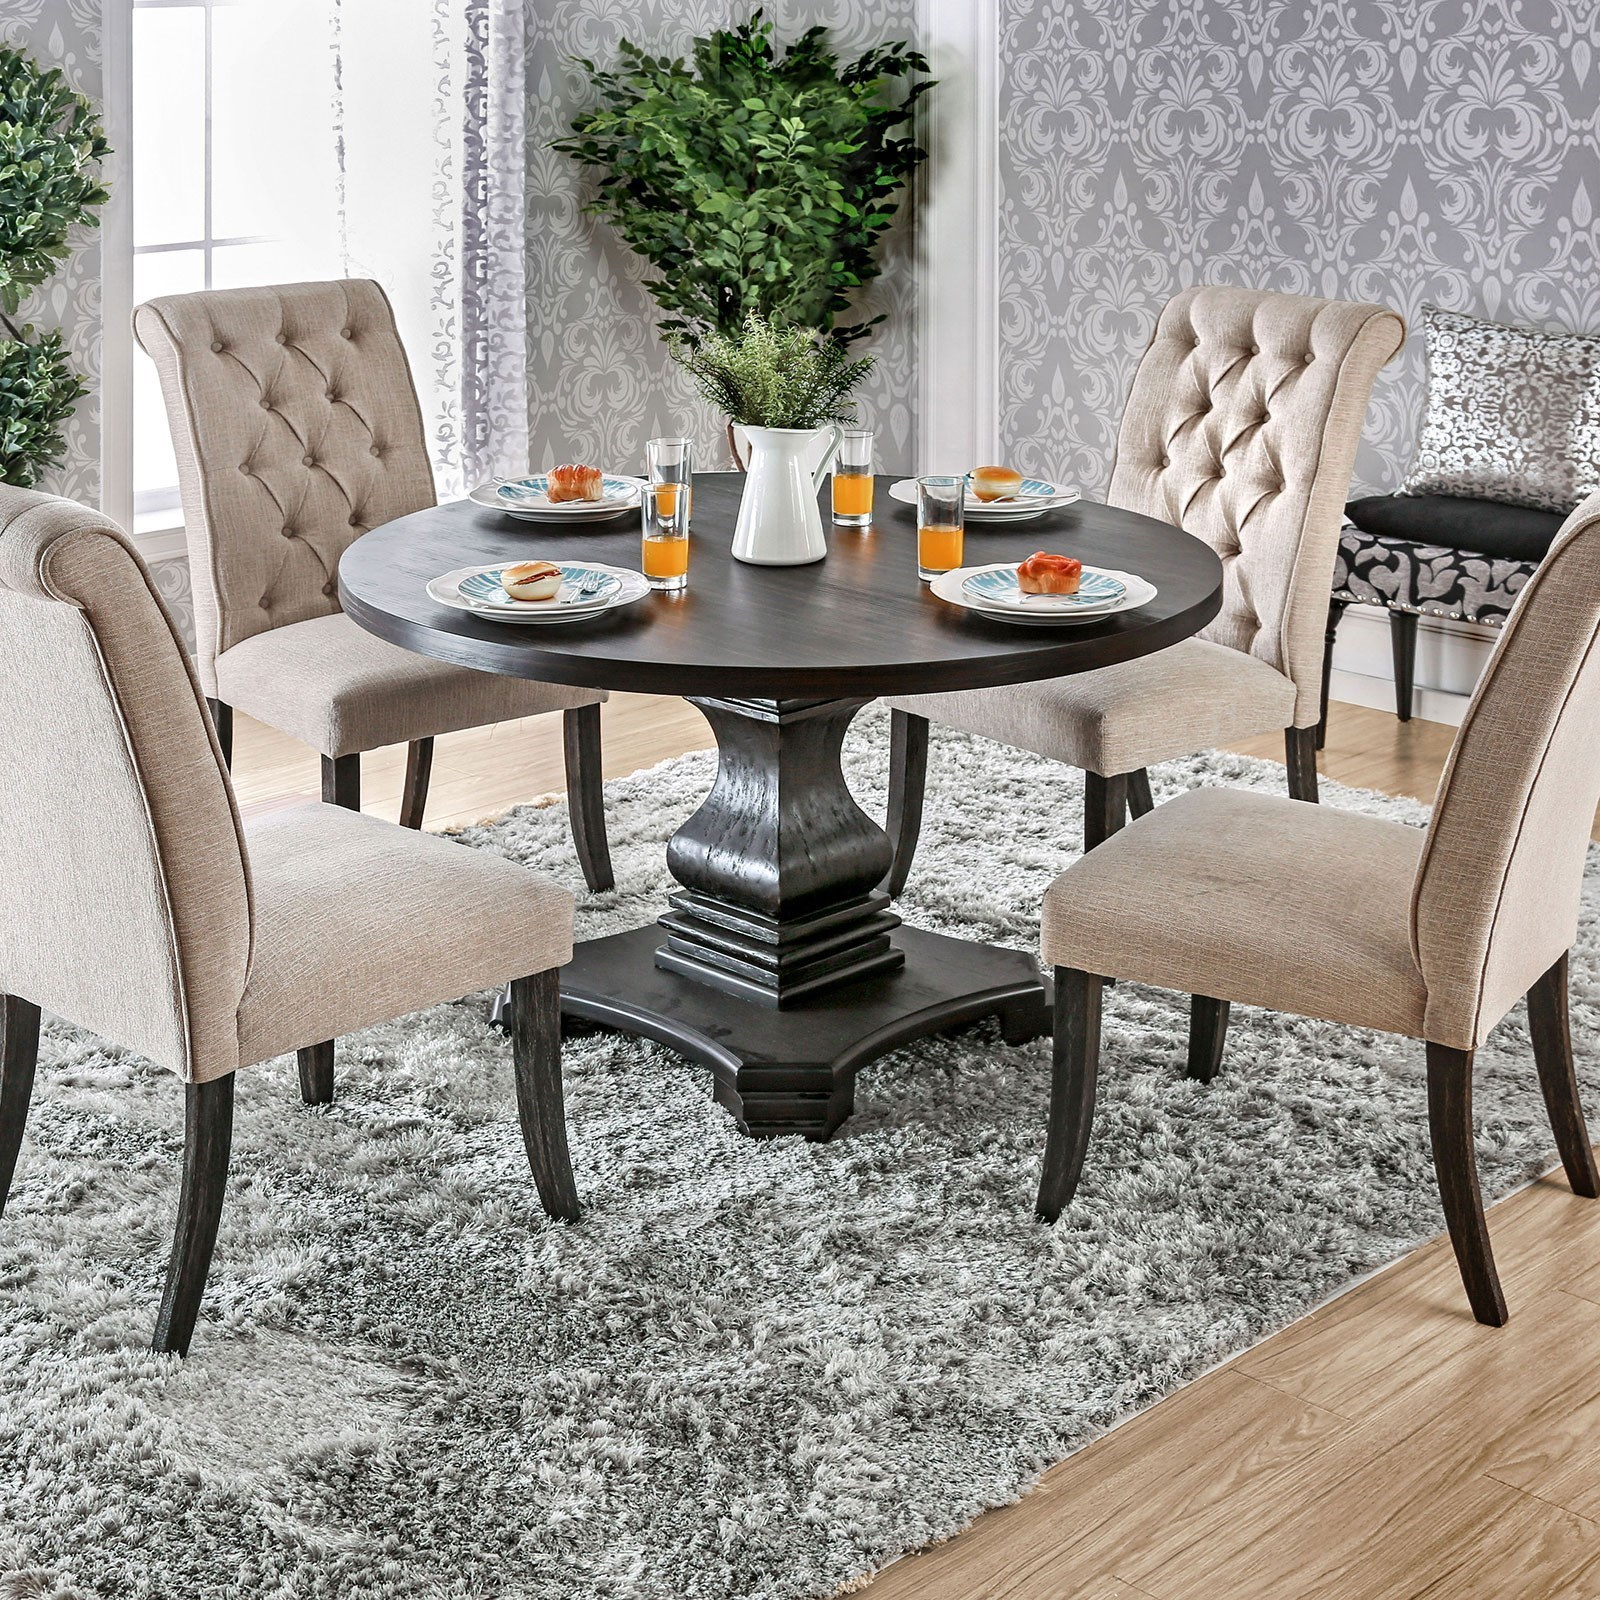 Furniture Of America Foa Nerissa Cm3840rt Table Vintage Style Round Dining Del Sol Tables